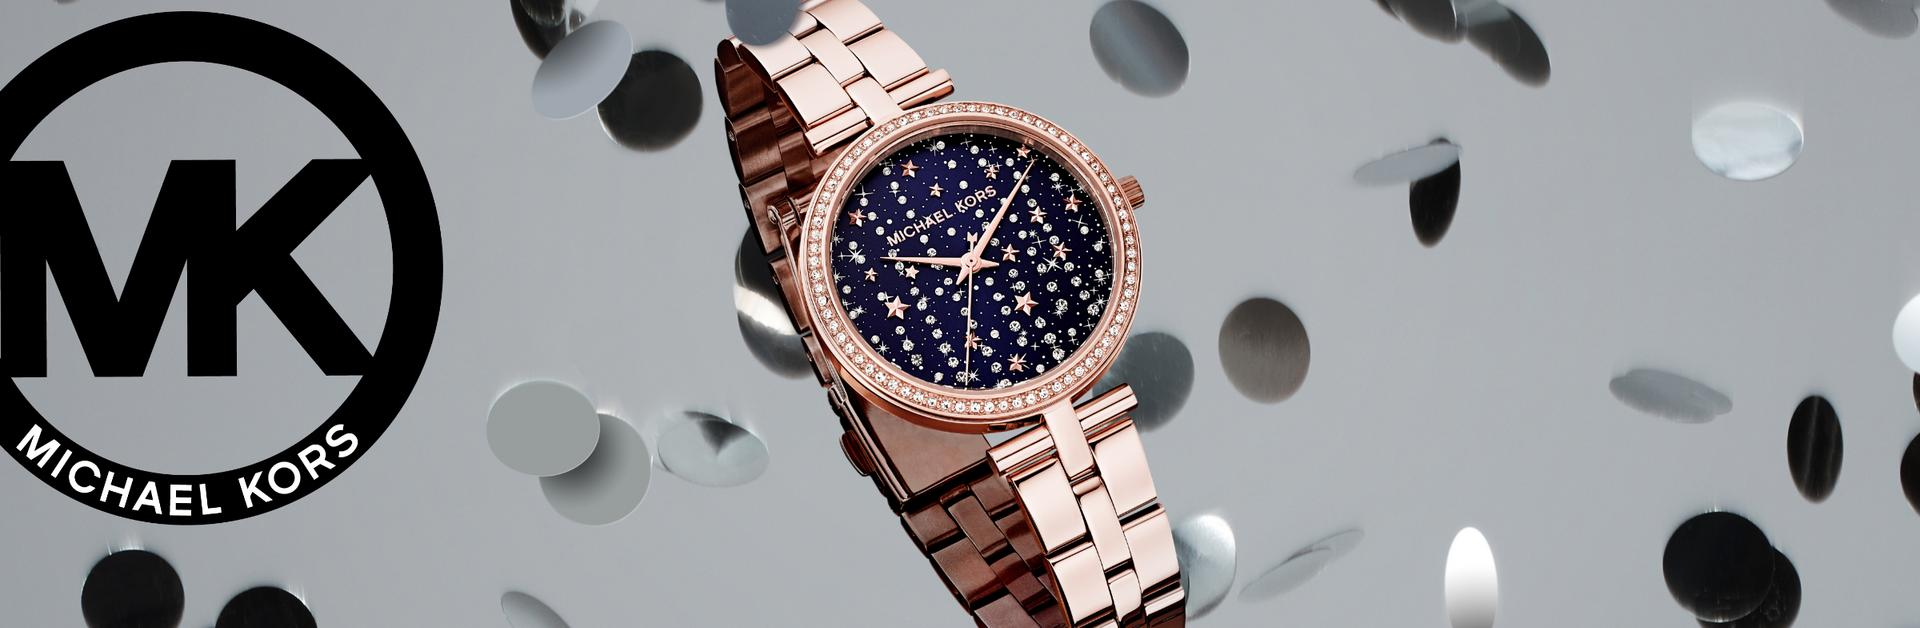 Michael Kors watches for ladies at Ernest Jones